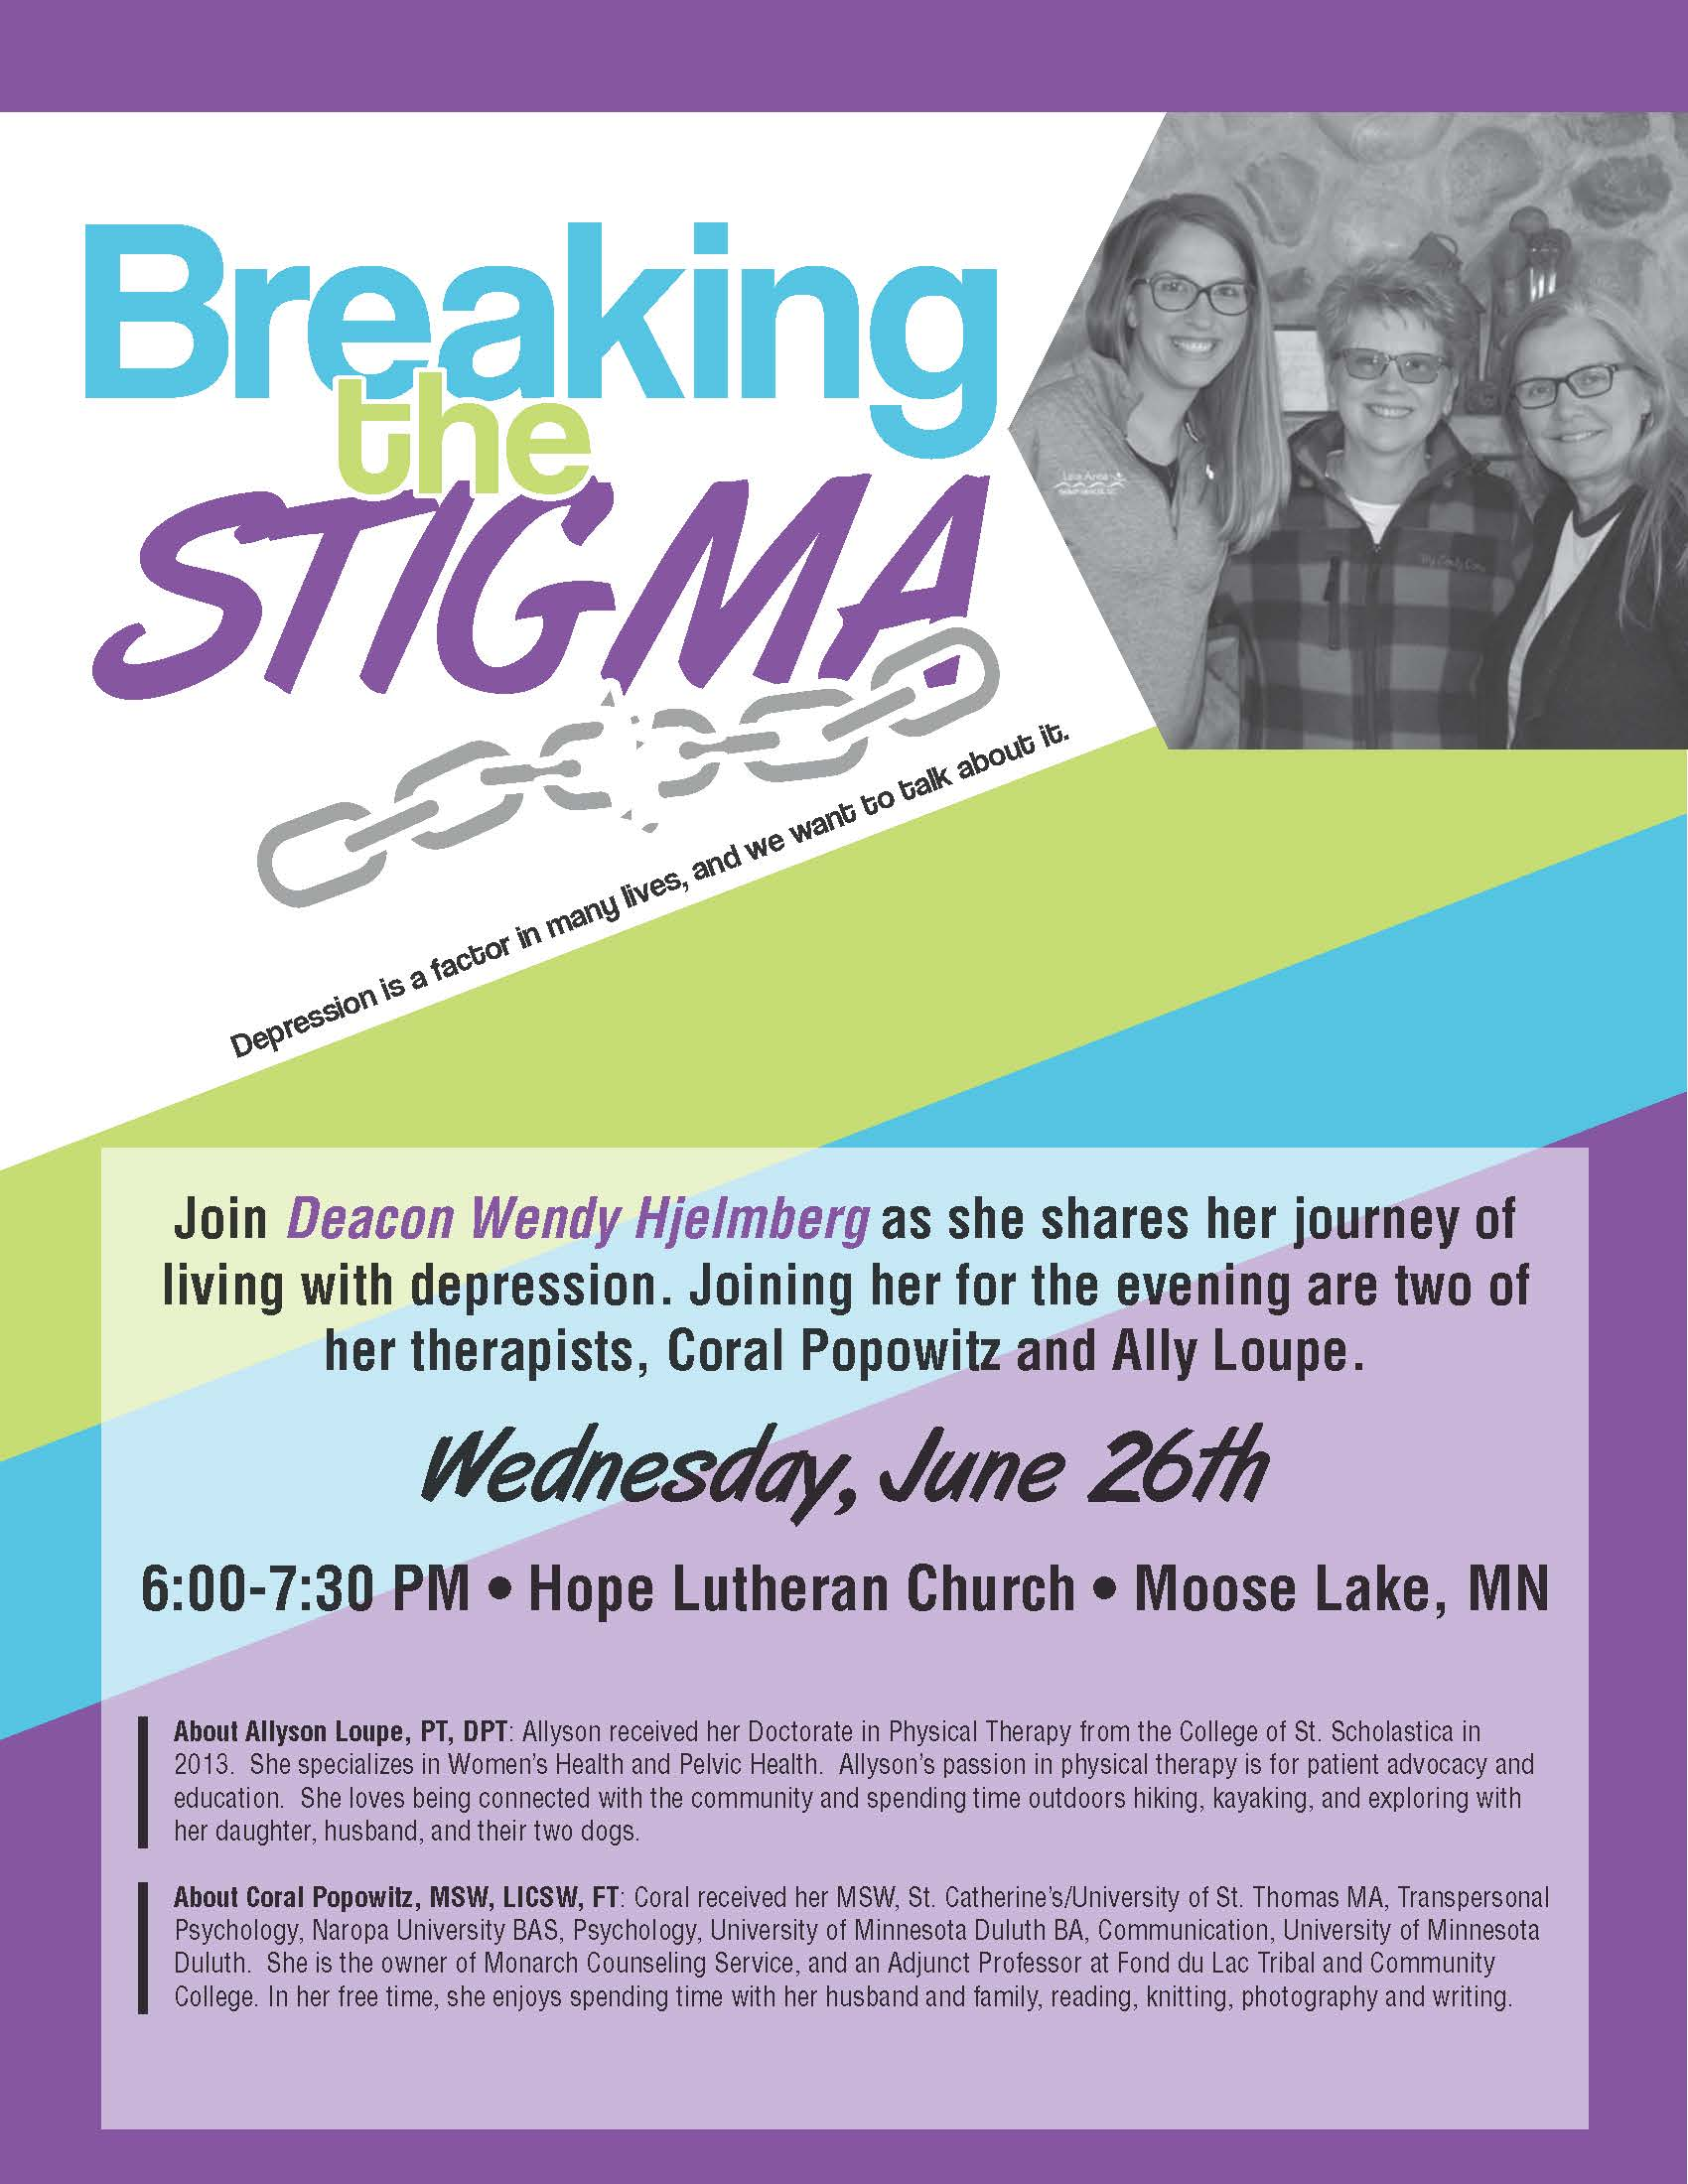 Breaking the Stigma Poster - Journey of Depression